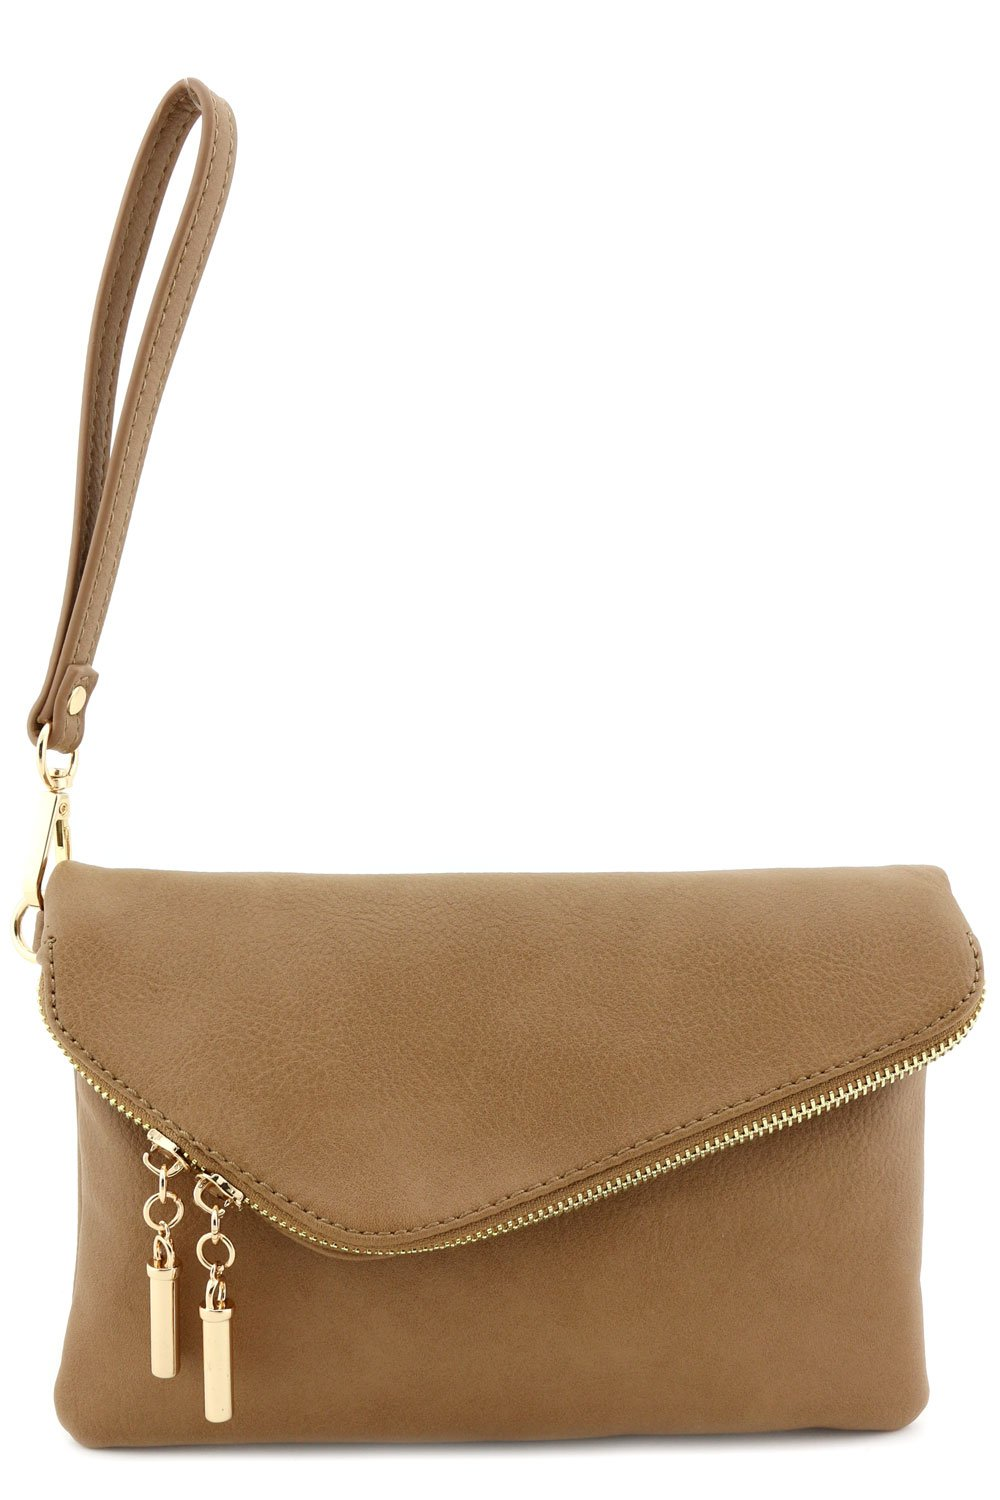 Envelope Wristlet Clutch Crossbody Bag with Chain Strap Stone by FashionPuzzle (Image #2)